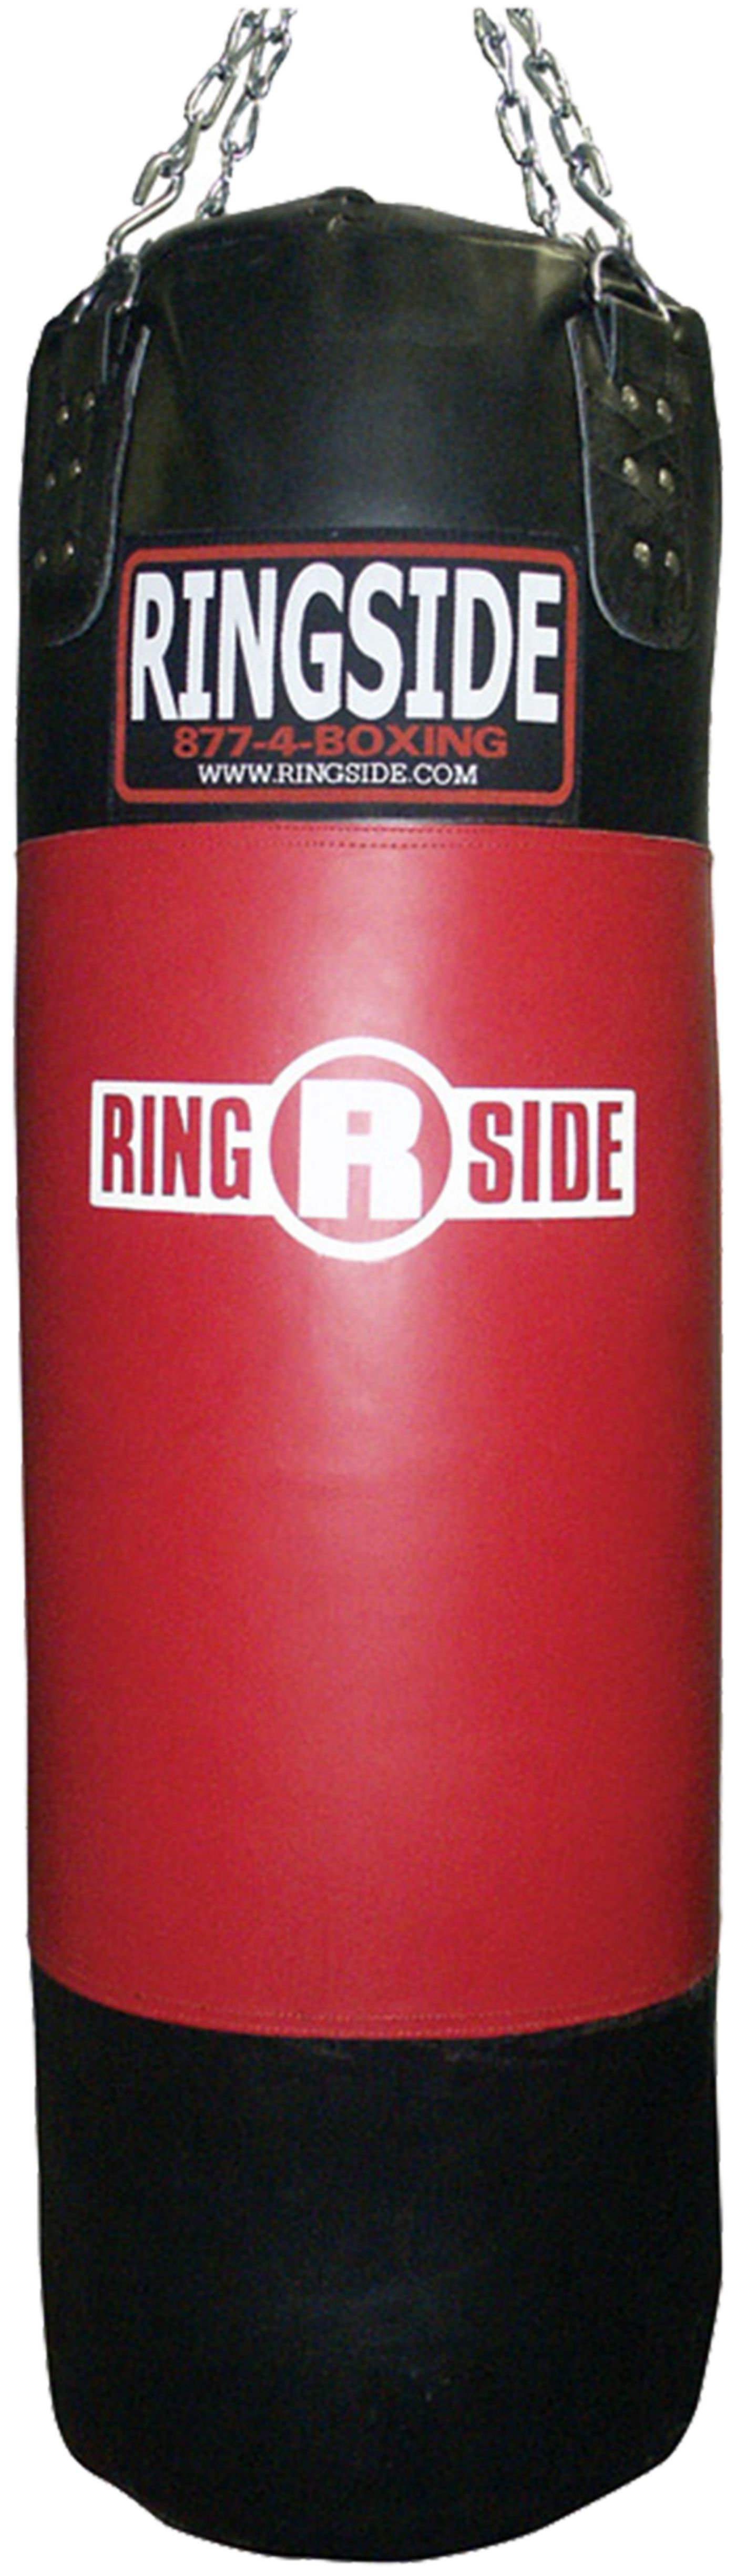 Ringside 130 lb. Powerhide Soft Filled Bag